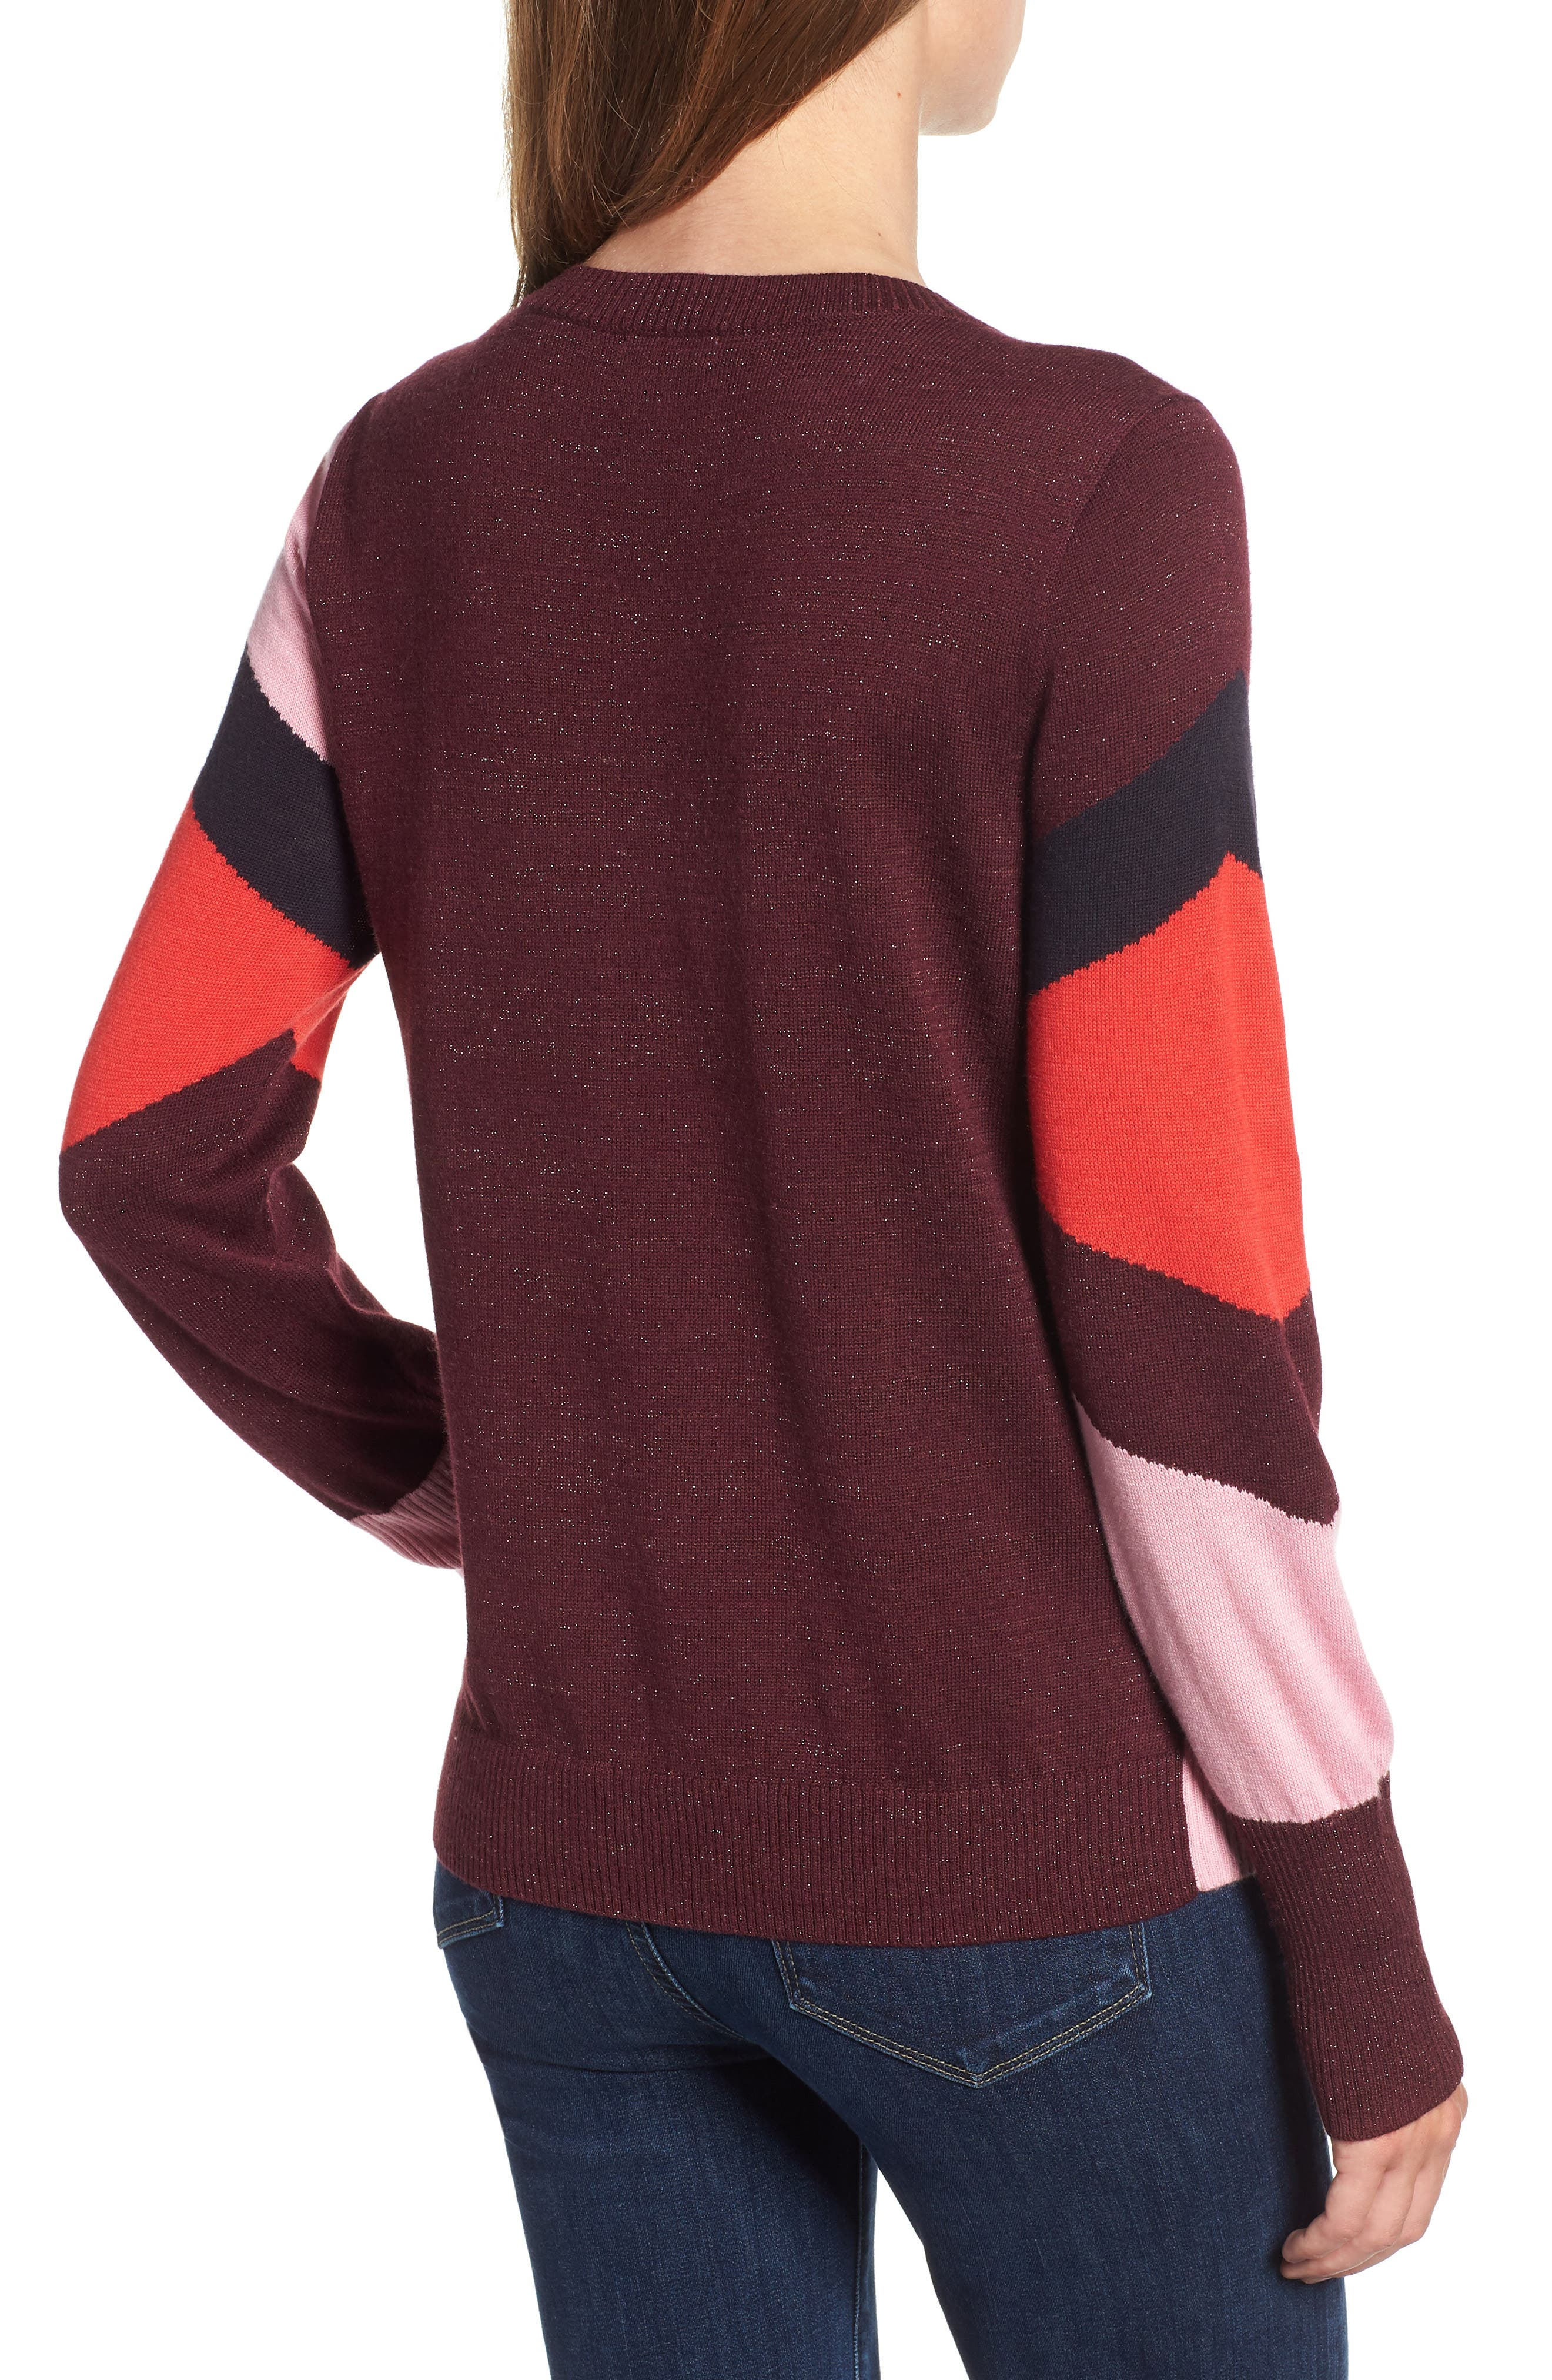 Intarsia Sweater,                             Alternate thumbnail 2, color,                             PINK STORM GRAPHIC INTARSIA